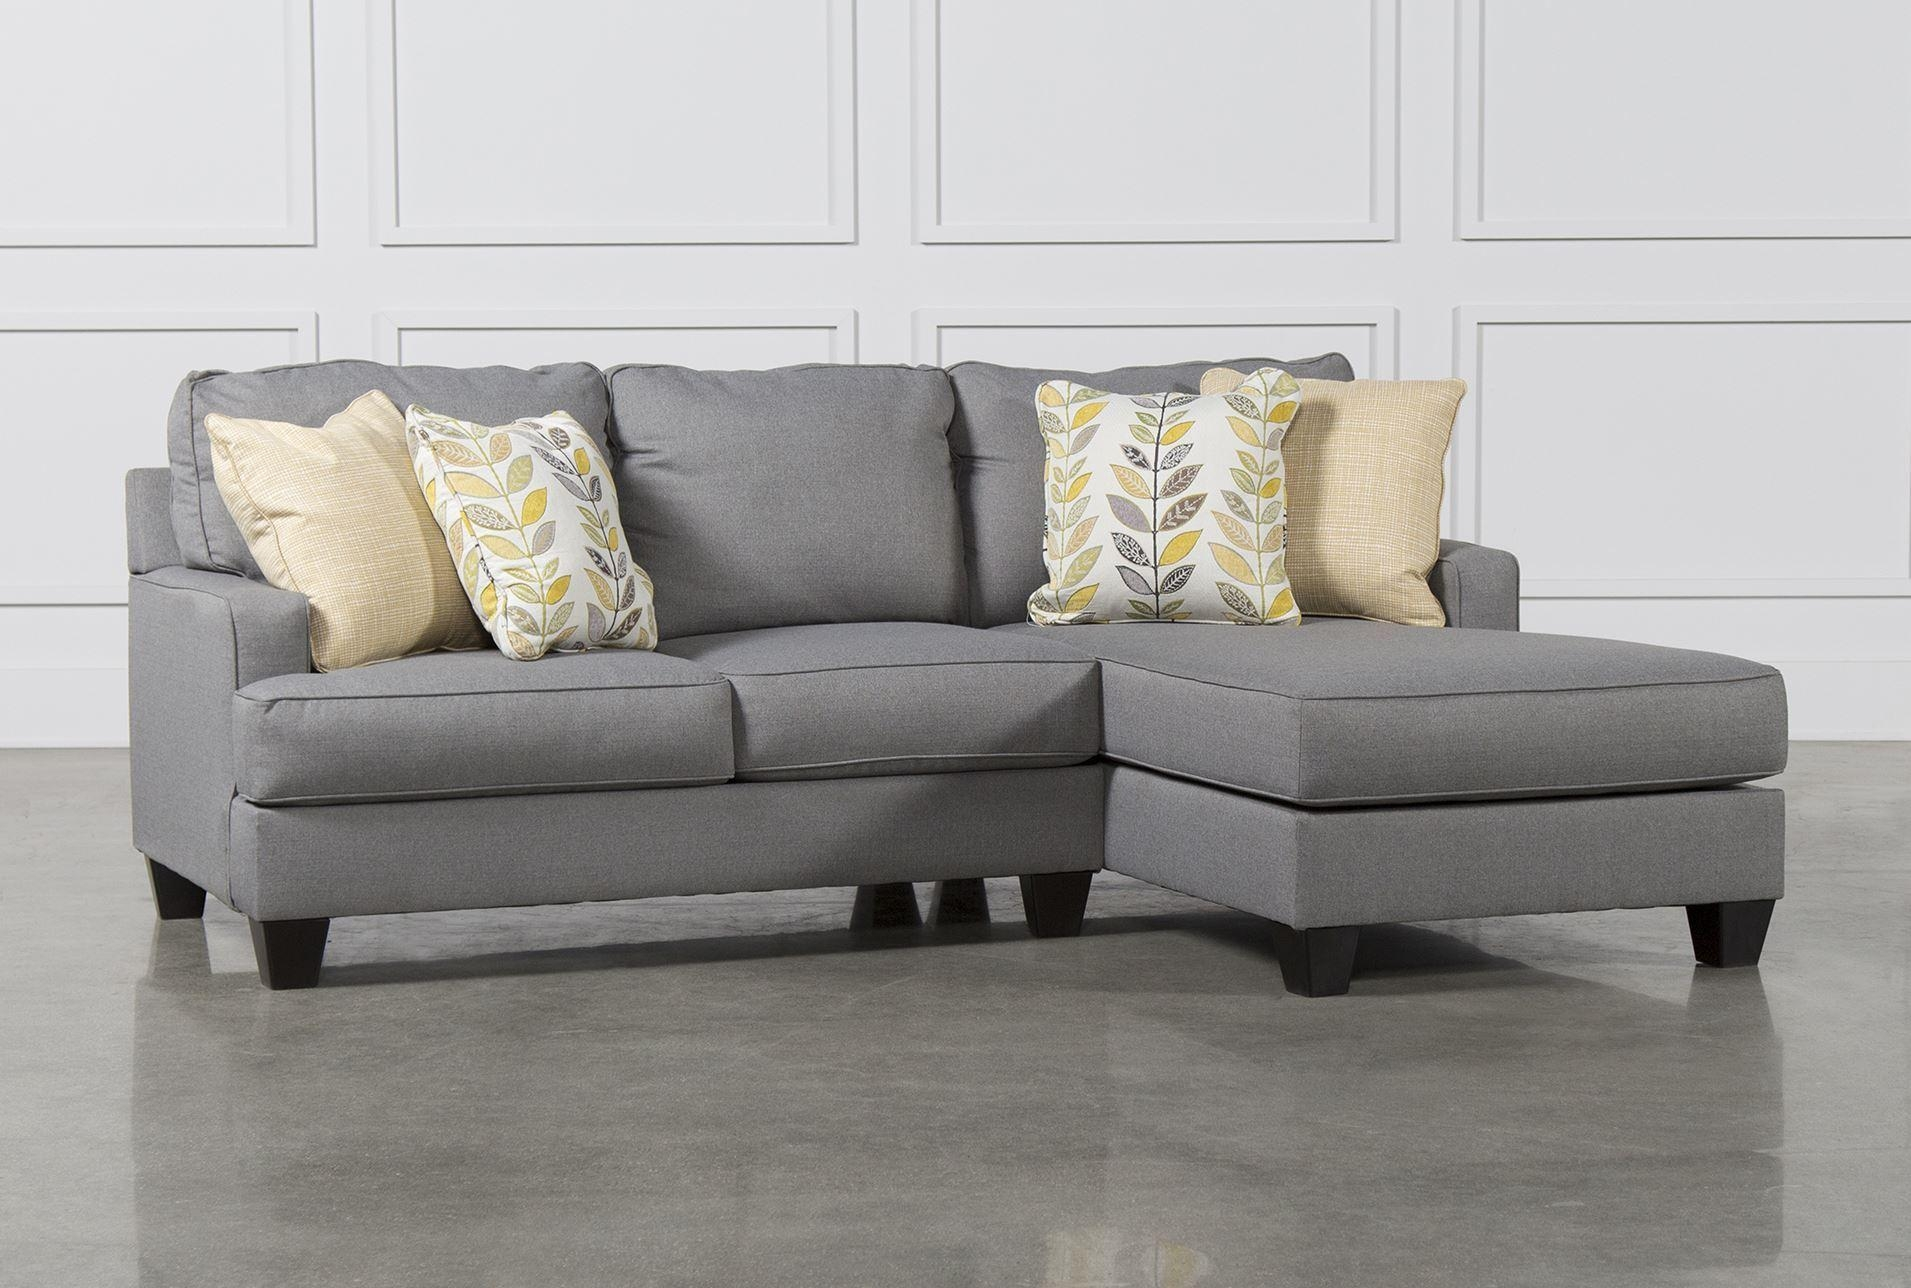 Furniture: Sectional Sofas Costco | Sectional Couches Costco With Regard To Small 2 Piece Sectional Sofas (View 5 of 23)